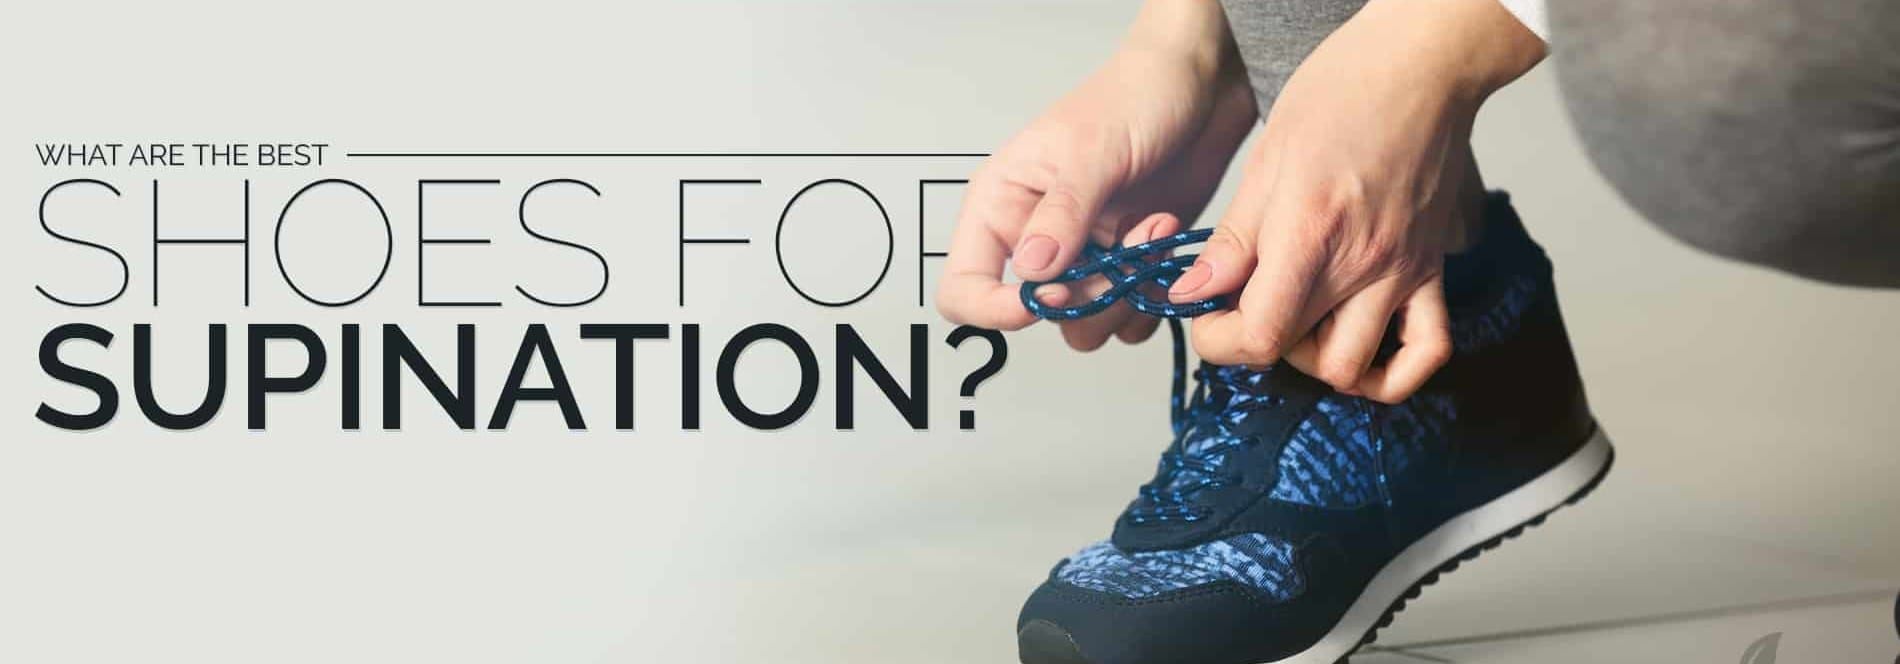 What Are The Best Shoes For Supination